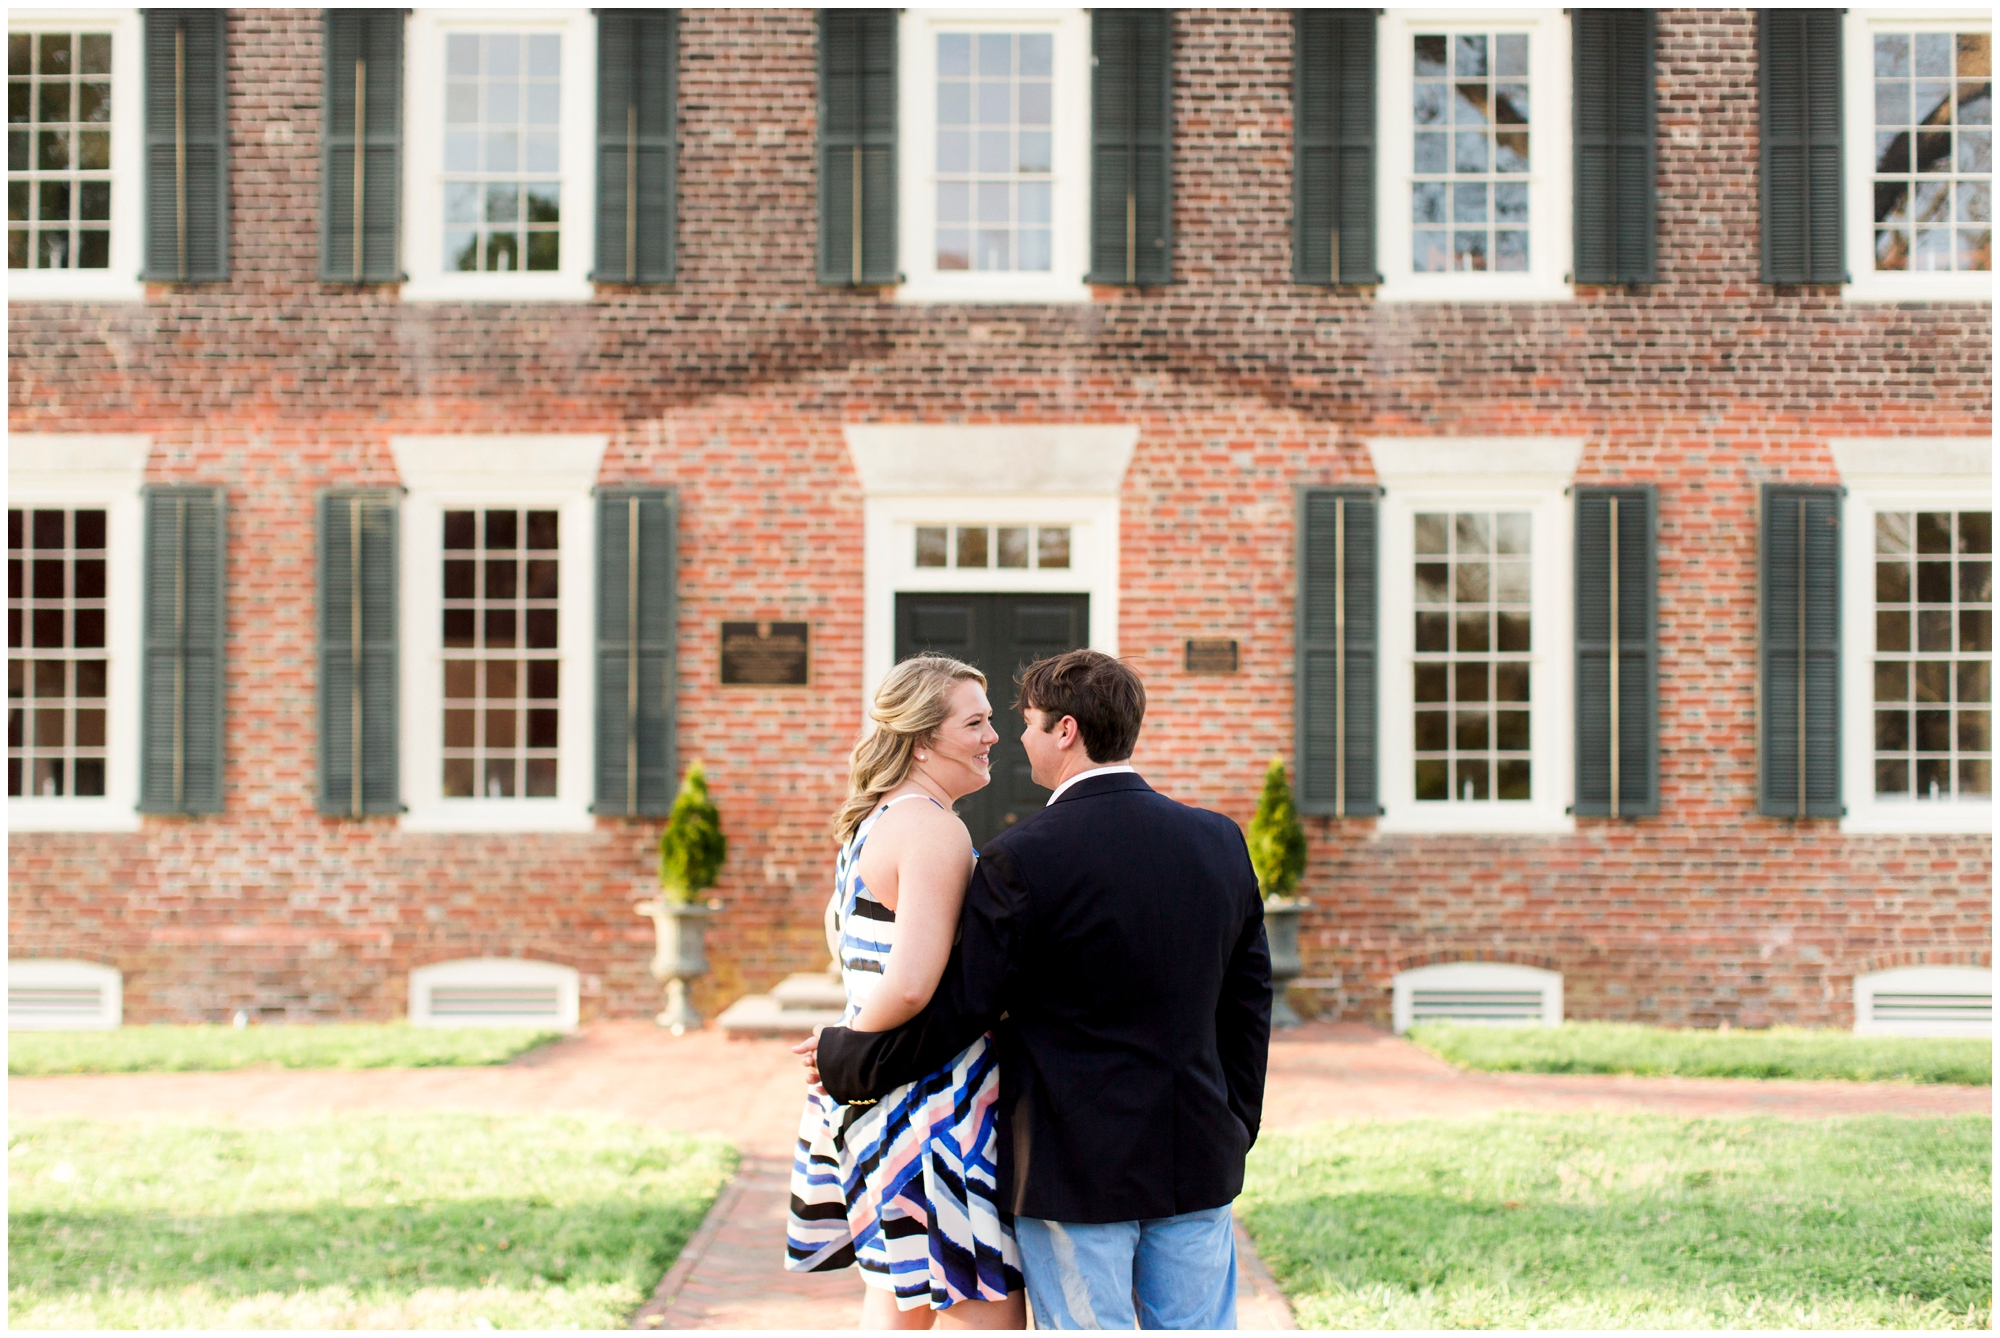 Rachel-Robert-Urbanna-Virginia-Spring-Engagement-Photos_0003.jpg